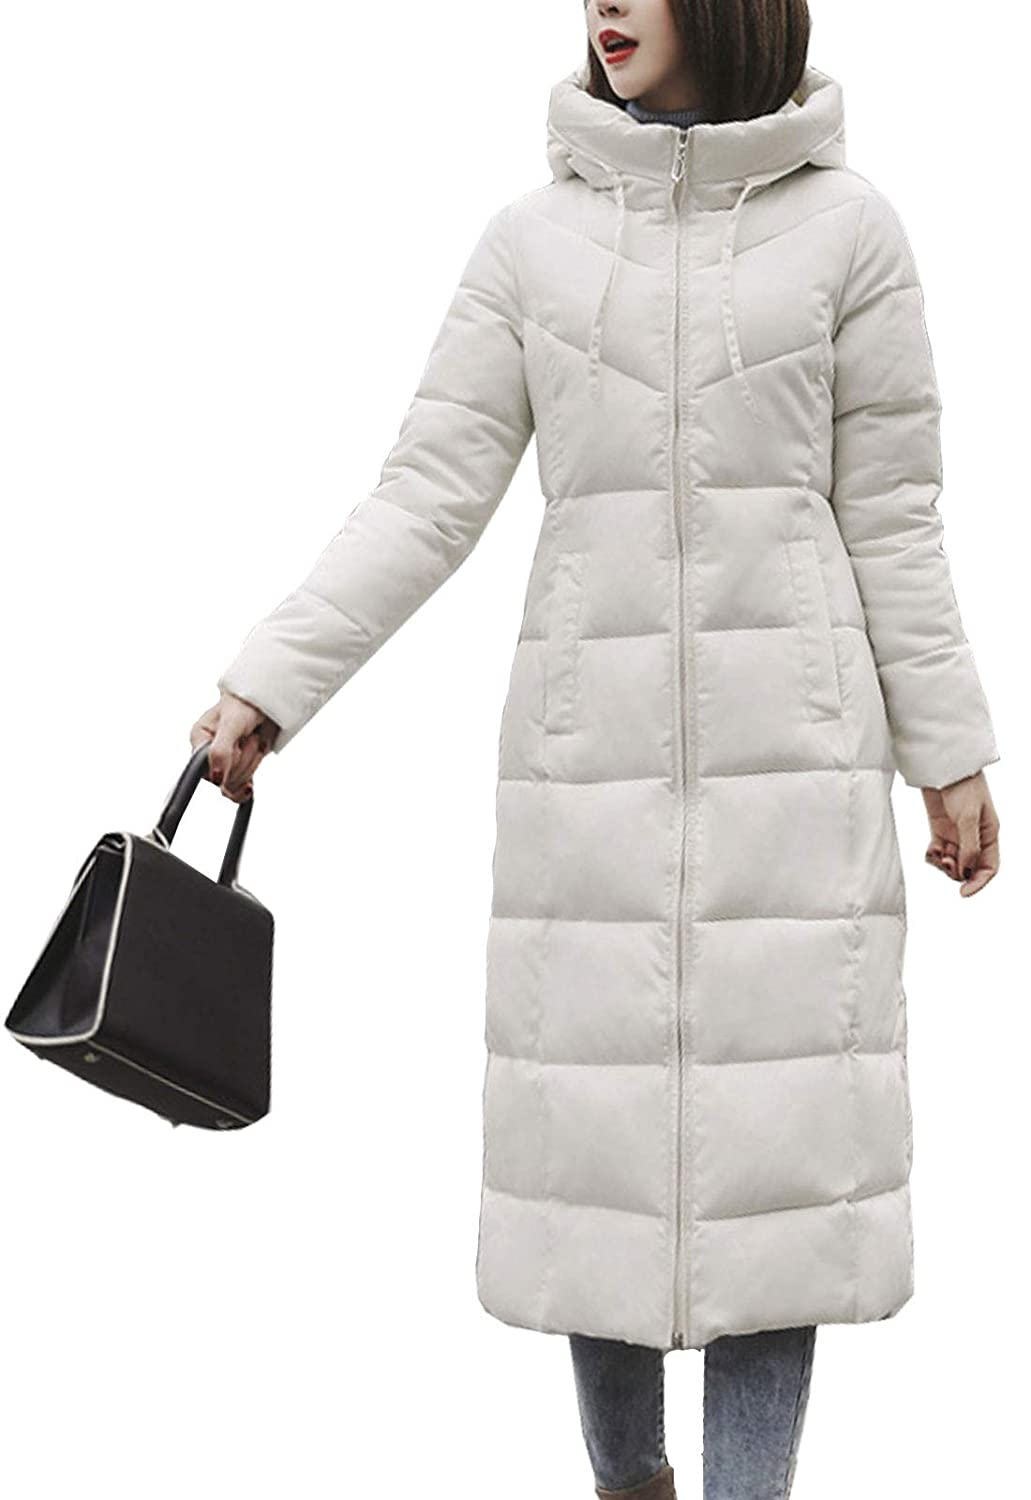 White 2 Flygo Womens Winter Warm Faux Fur Hooded Collar Down Coat Qulited Puffer Jacket